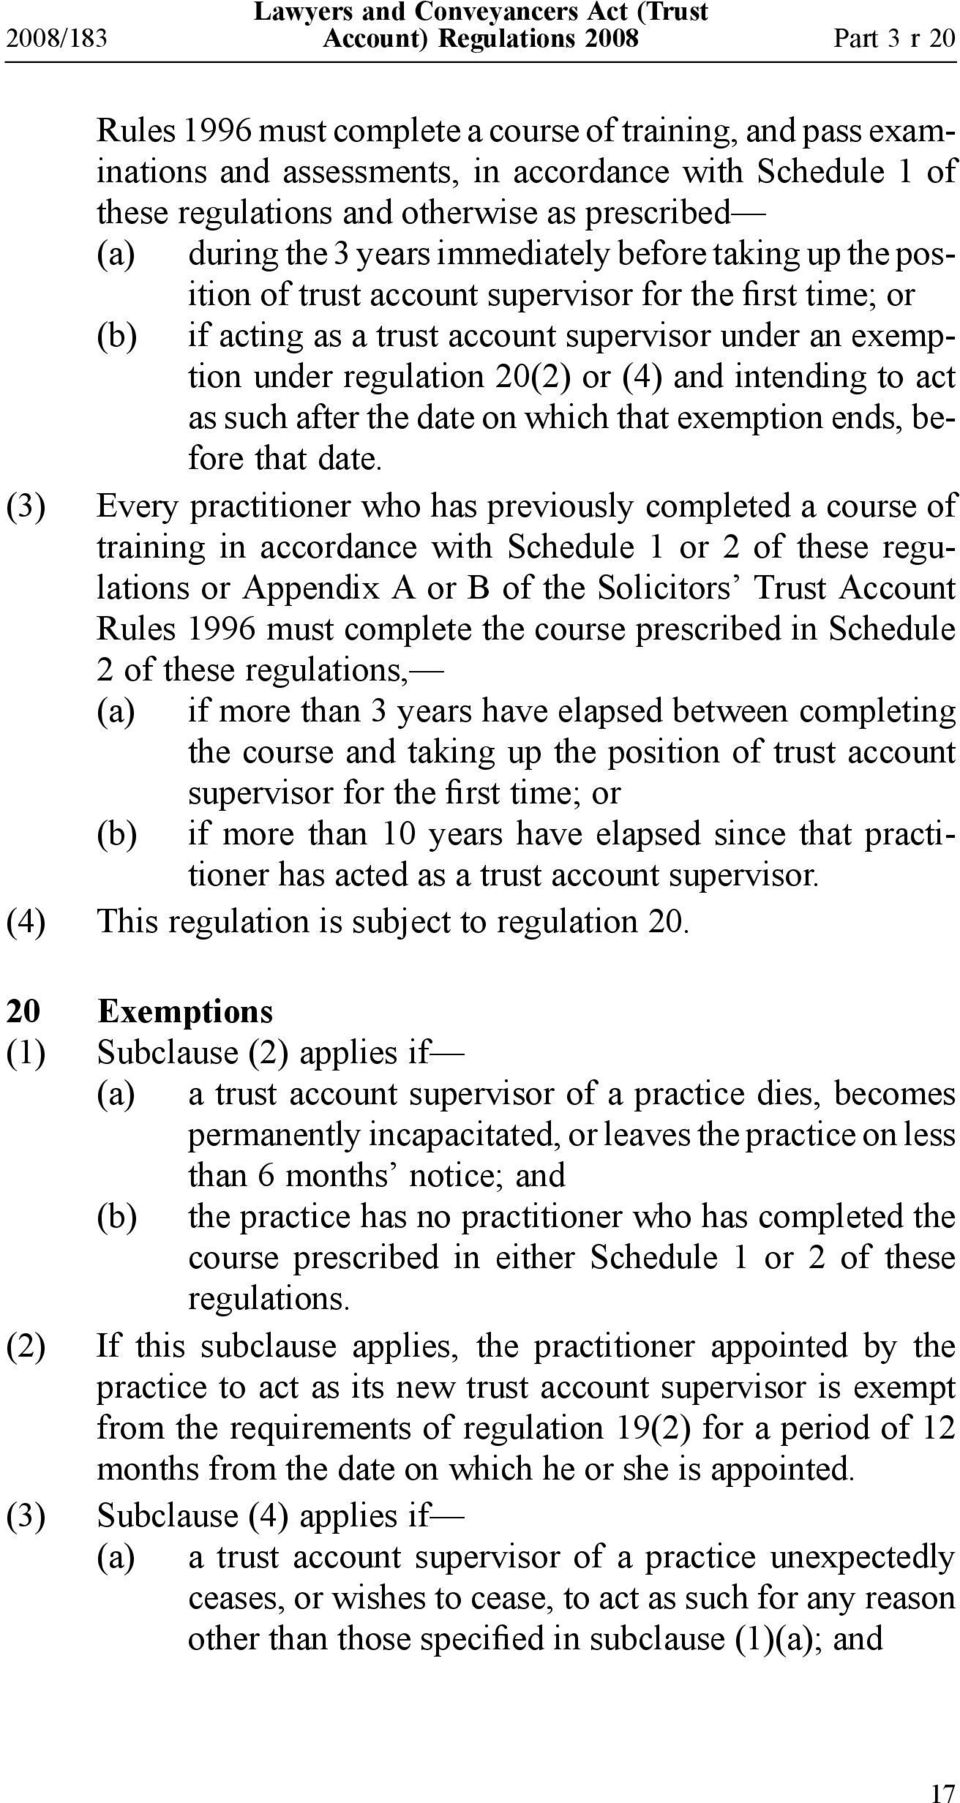 regulation 20(2) or (4) and intending to act as such after the date on which that exemption ends, before that date.